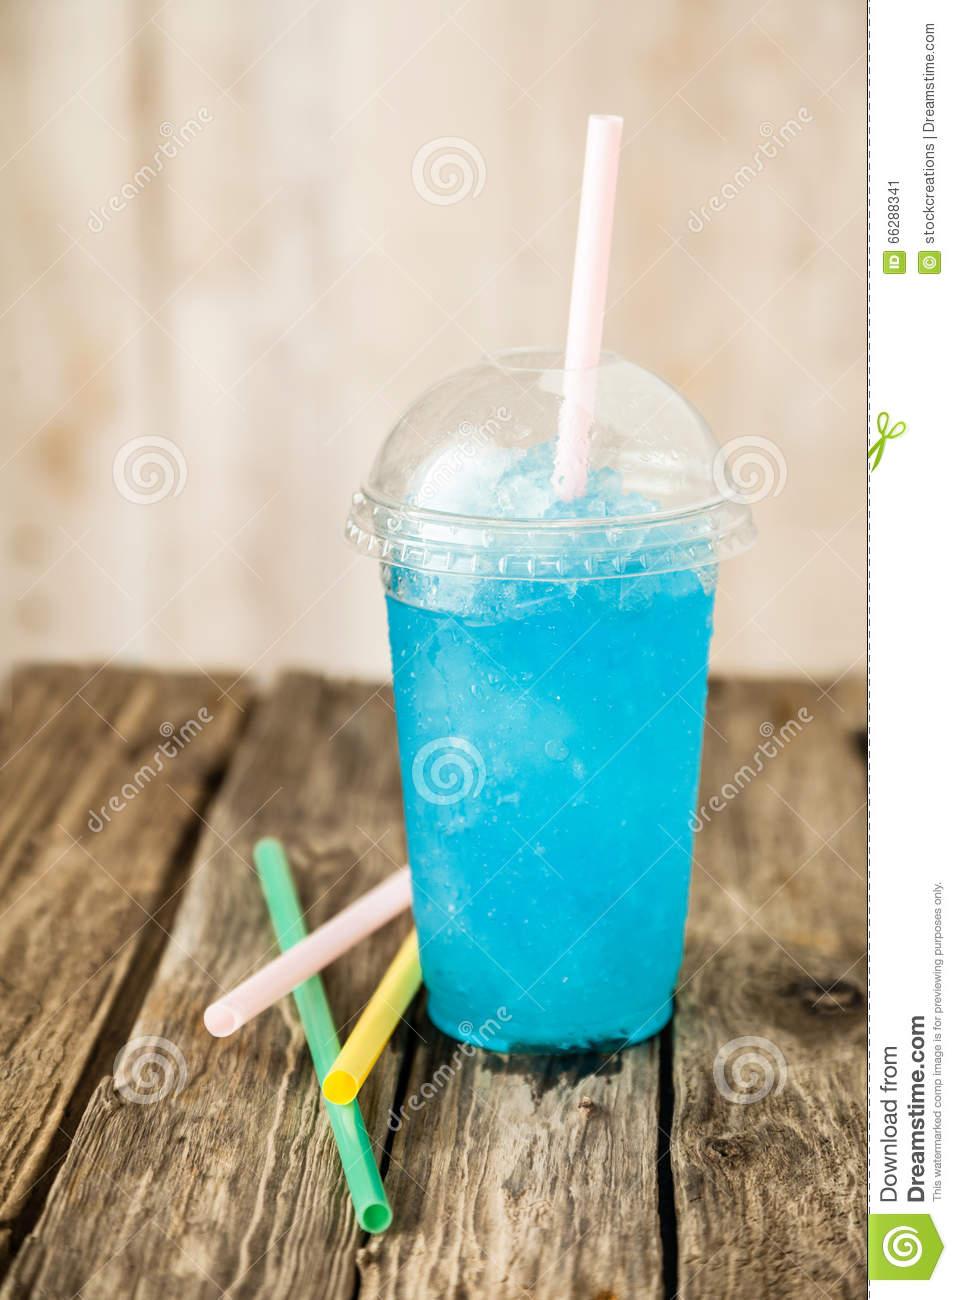 3d Liquid Abstract Wallpaper Frozen Blue Slushie In Plastic Cup With Straw Stock Photo